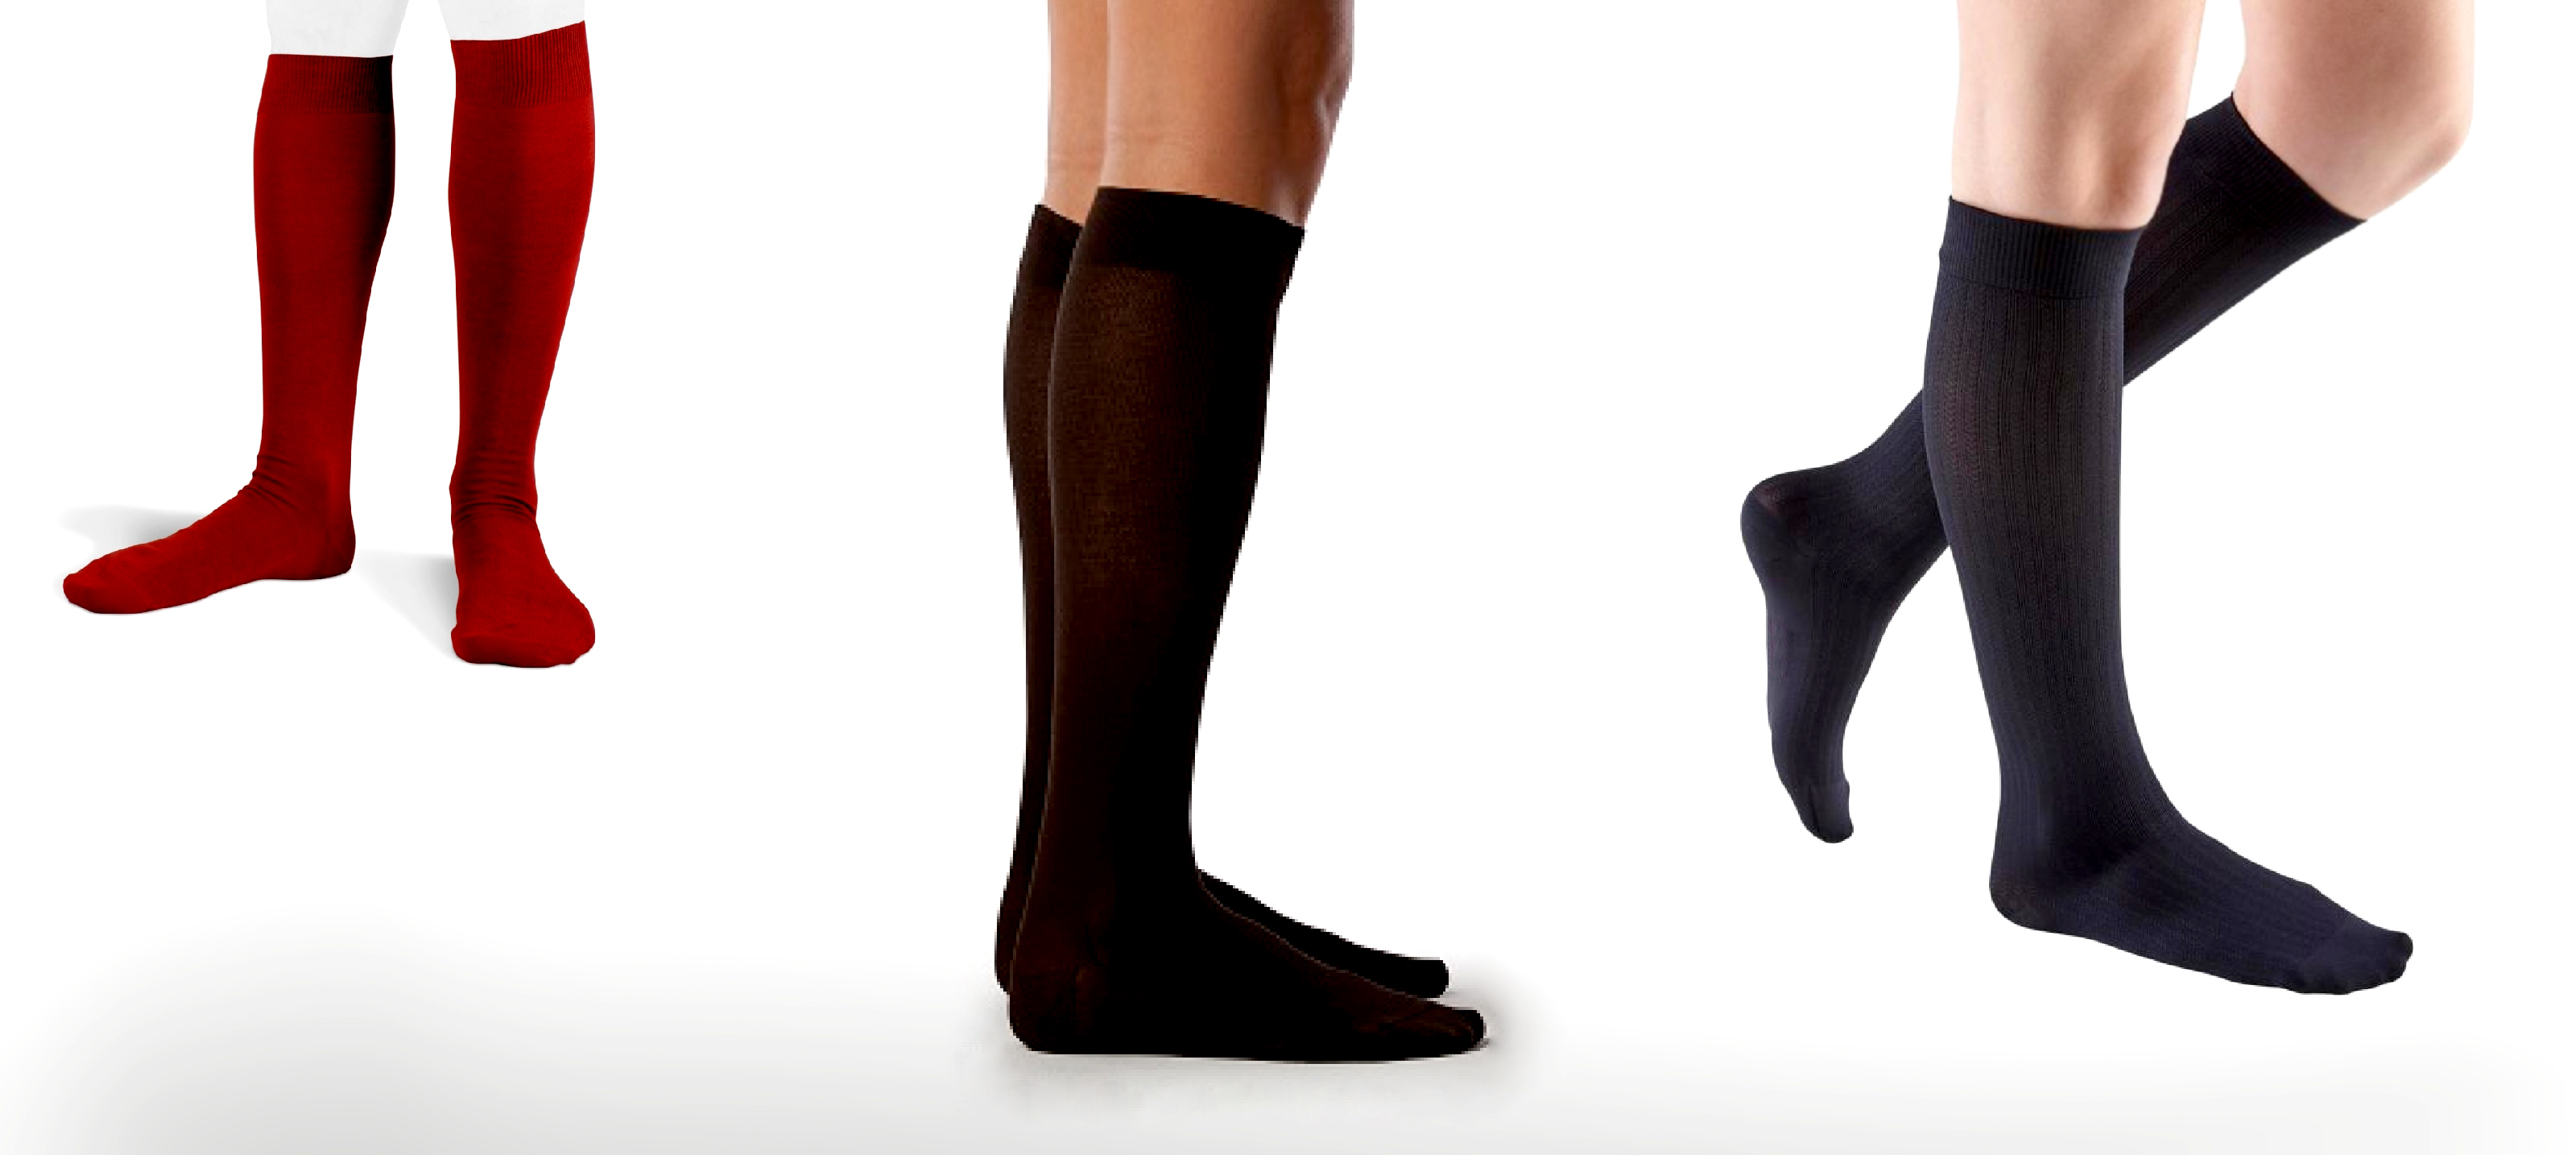 Compression Socks for diabetic patients